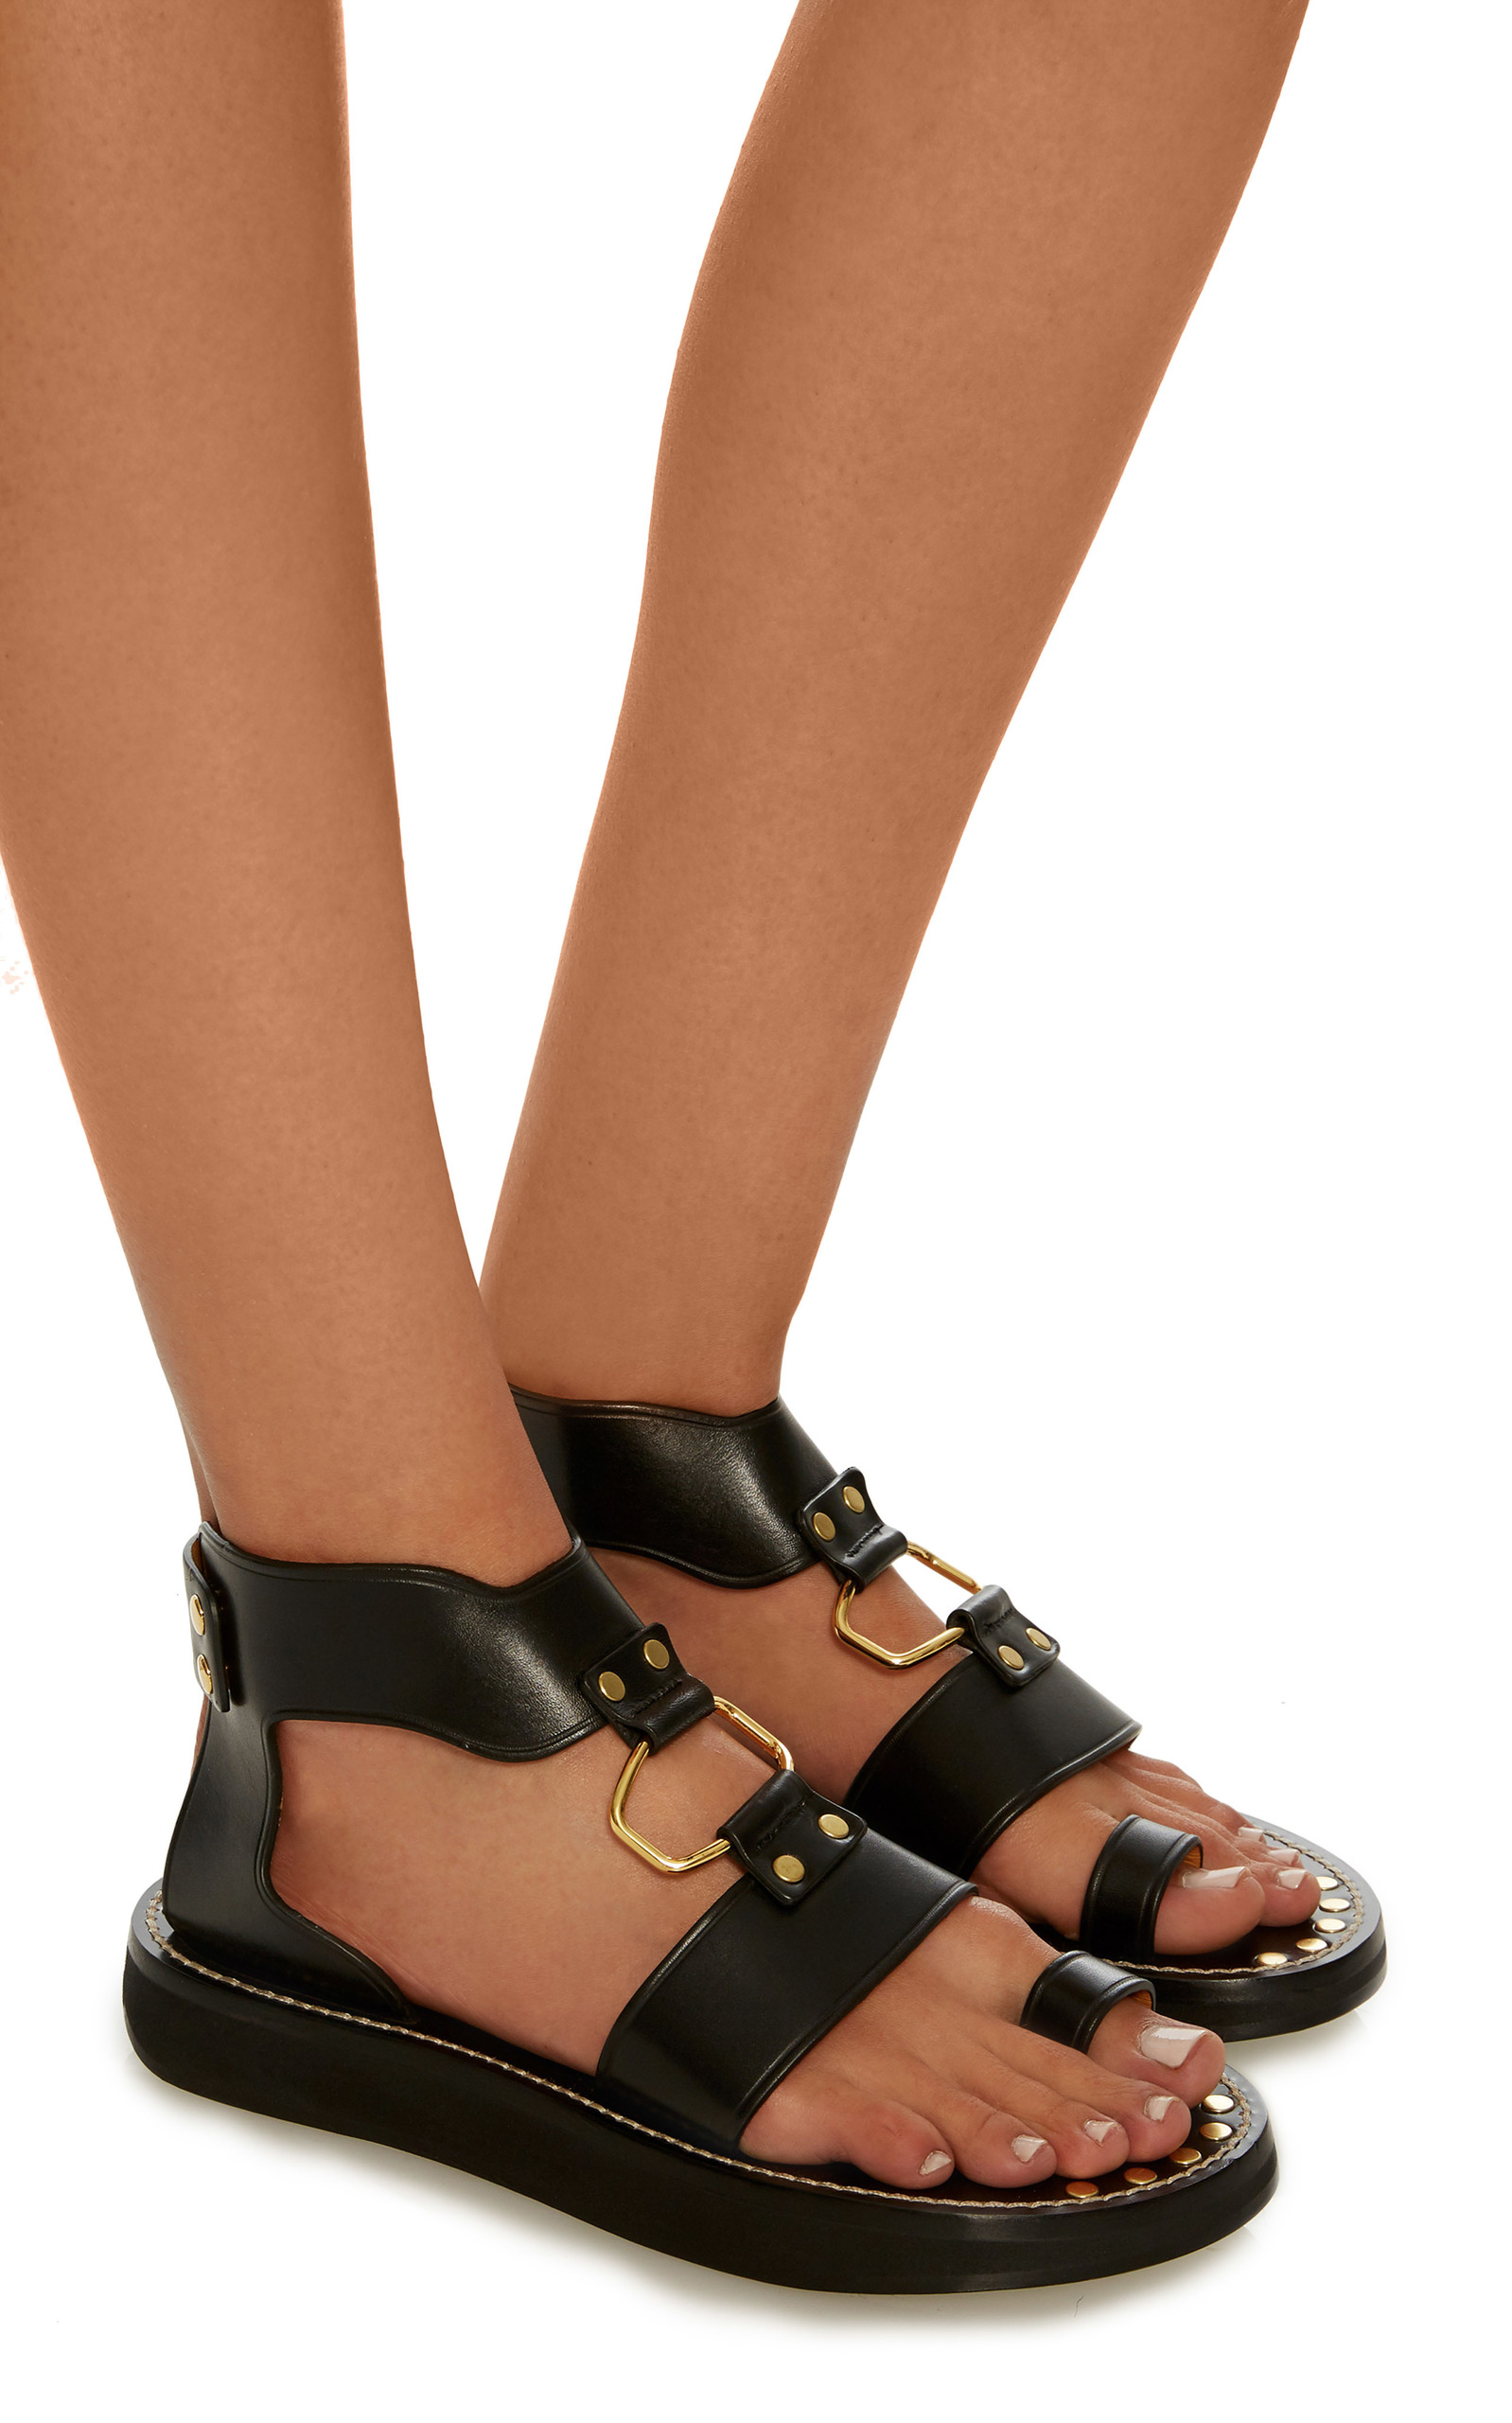 Isabel Marant Nindle sandals Buy Cheap Outlet Store Discount Manchester Outlet Geniue Stockist Free Shipping Footlocker Really Online MQmghS2fA